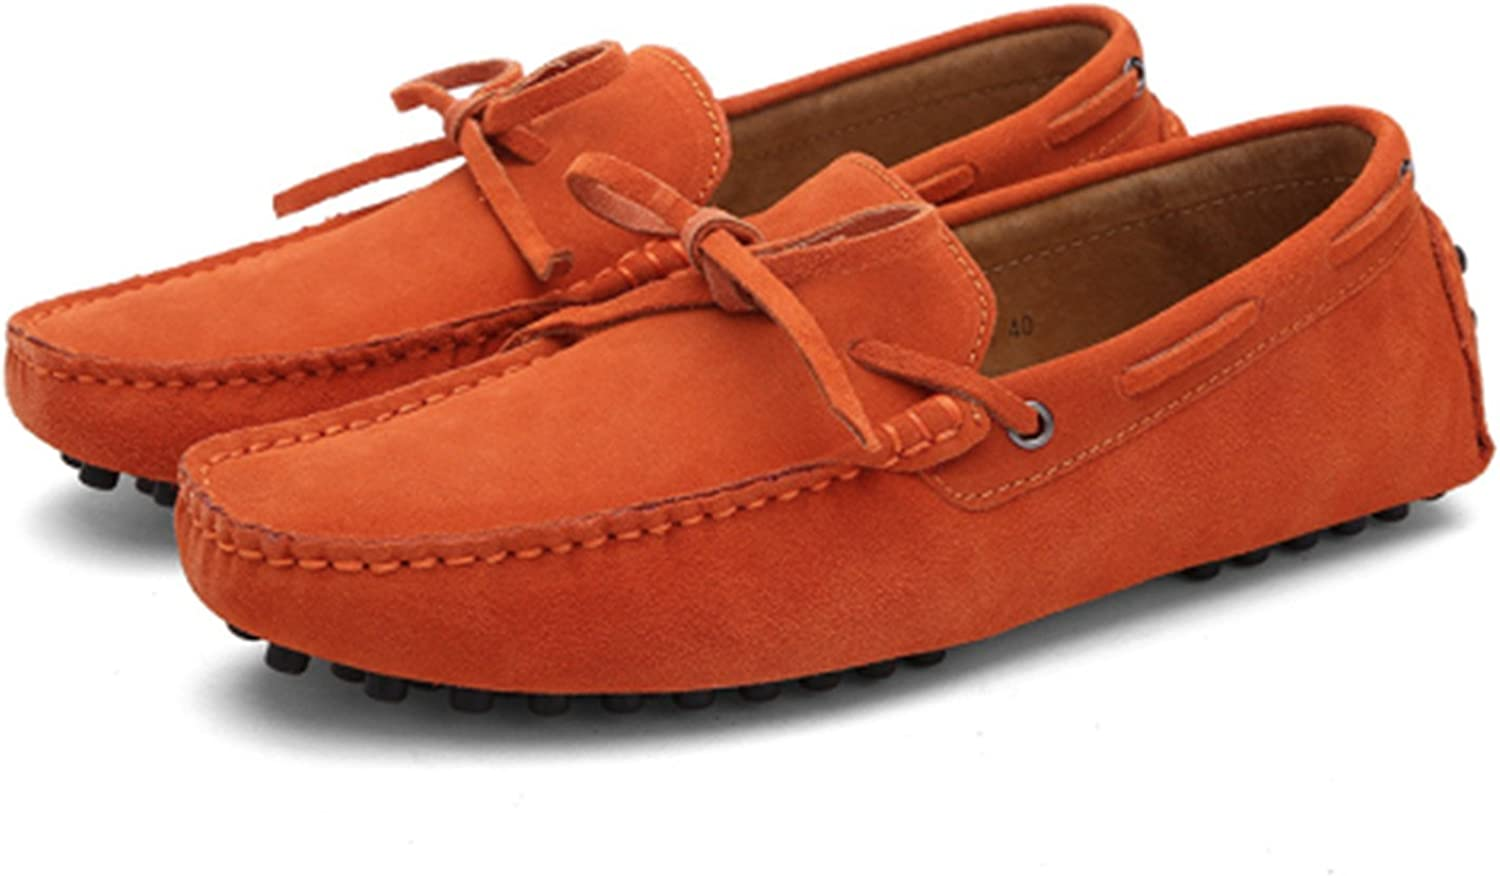 Hangshushiy Summer Spring Men Driving Shoes Loafers Leather Boat Shoes Breathable Male Casual Flats